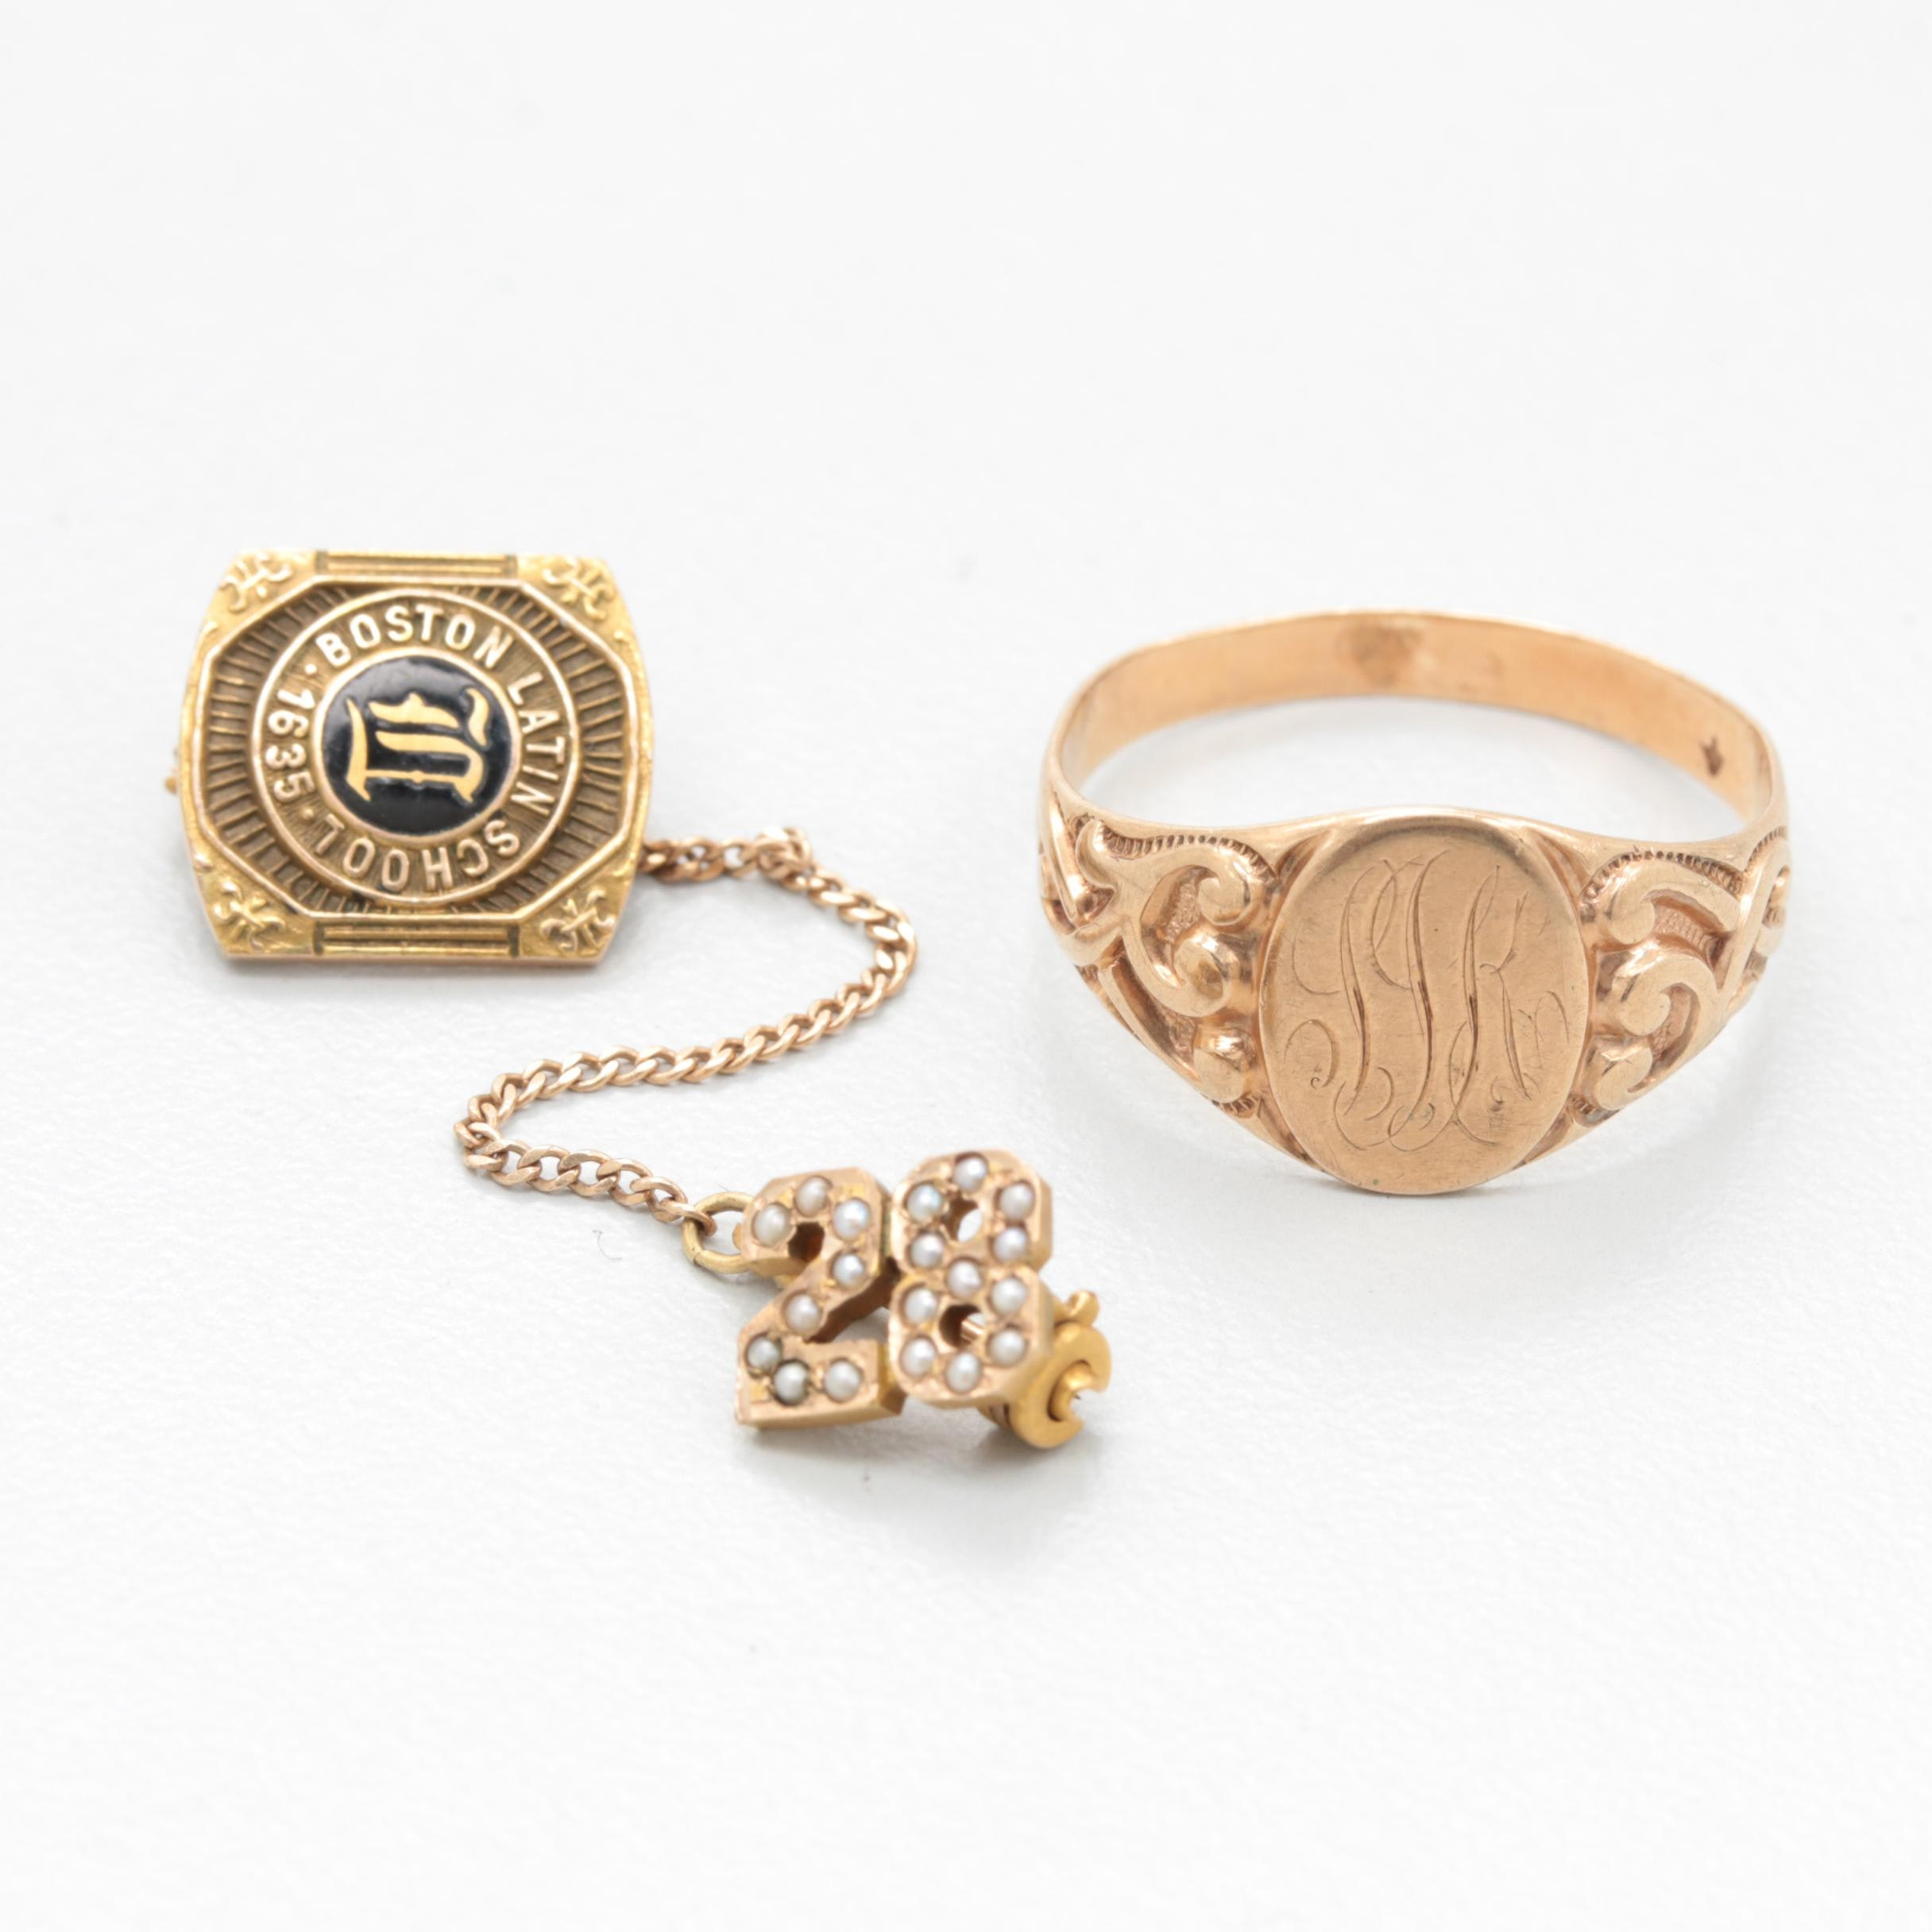 10K Yellow Gold Enamel and Seed Pearl Class Pins with Monogram Ring